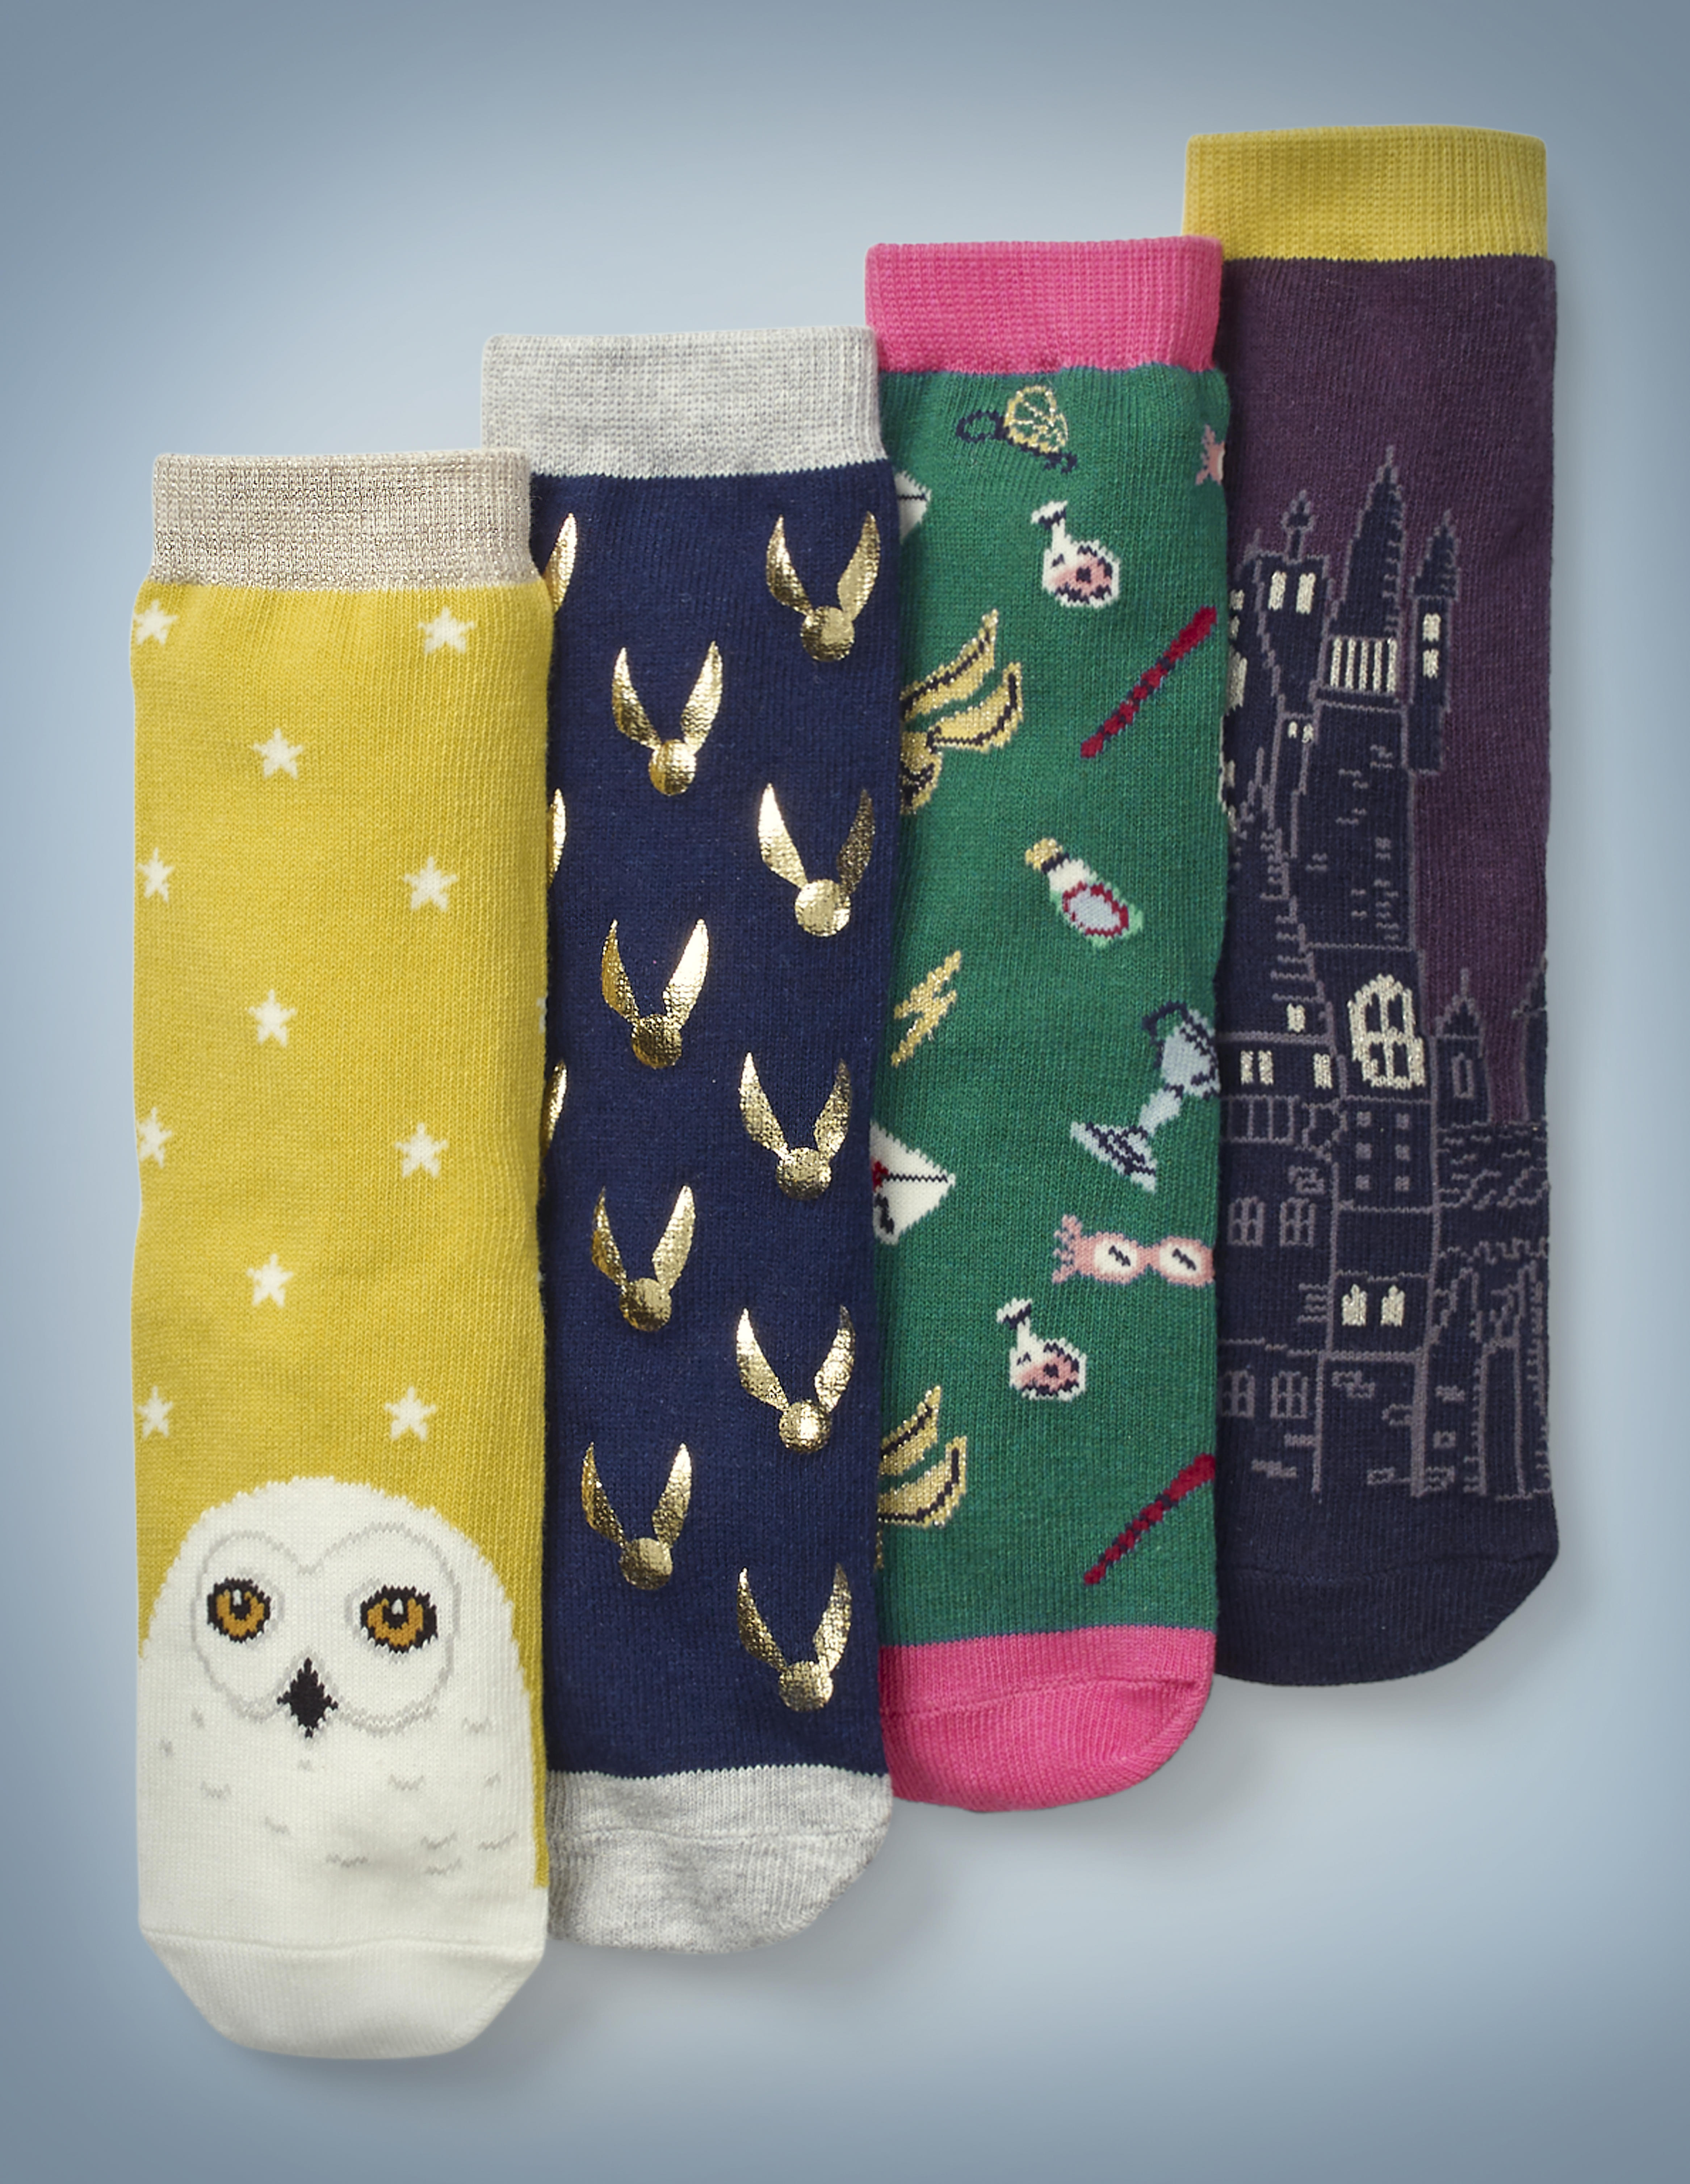 """The Mini Boden Pack of Harry Potter Socks features four different designs. Hedwig's face adorns the toe of a gold pair of socks with a white star pattern. Shiny Golden Snitches cover a navy blue pair. Iconic """"Harry Potter"""" items, such as Luna Lovegood's Spectrespecs and Hogwarts acceptance letters, cover a green and pink pair. An image of Hogwarts adorns a plum and gold pair. The pack retails at £18."""